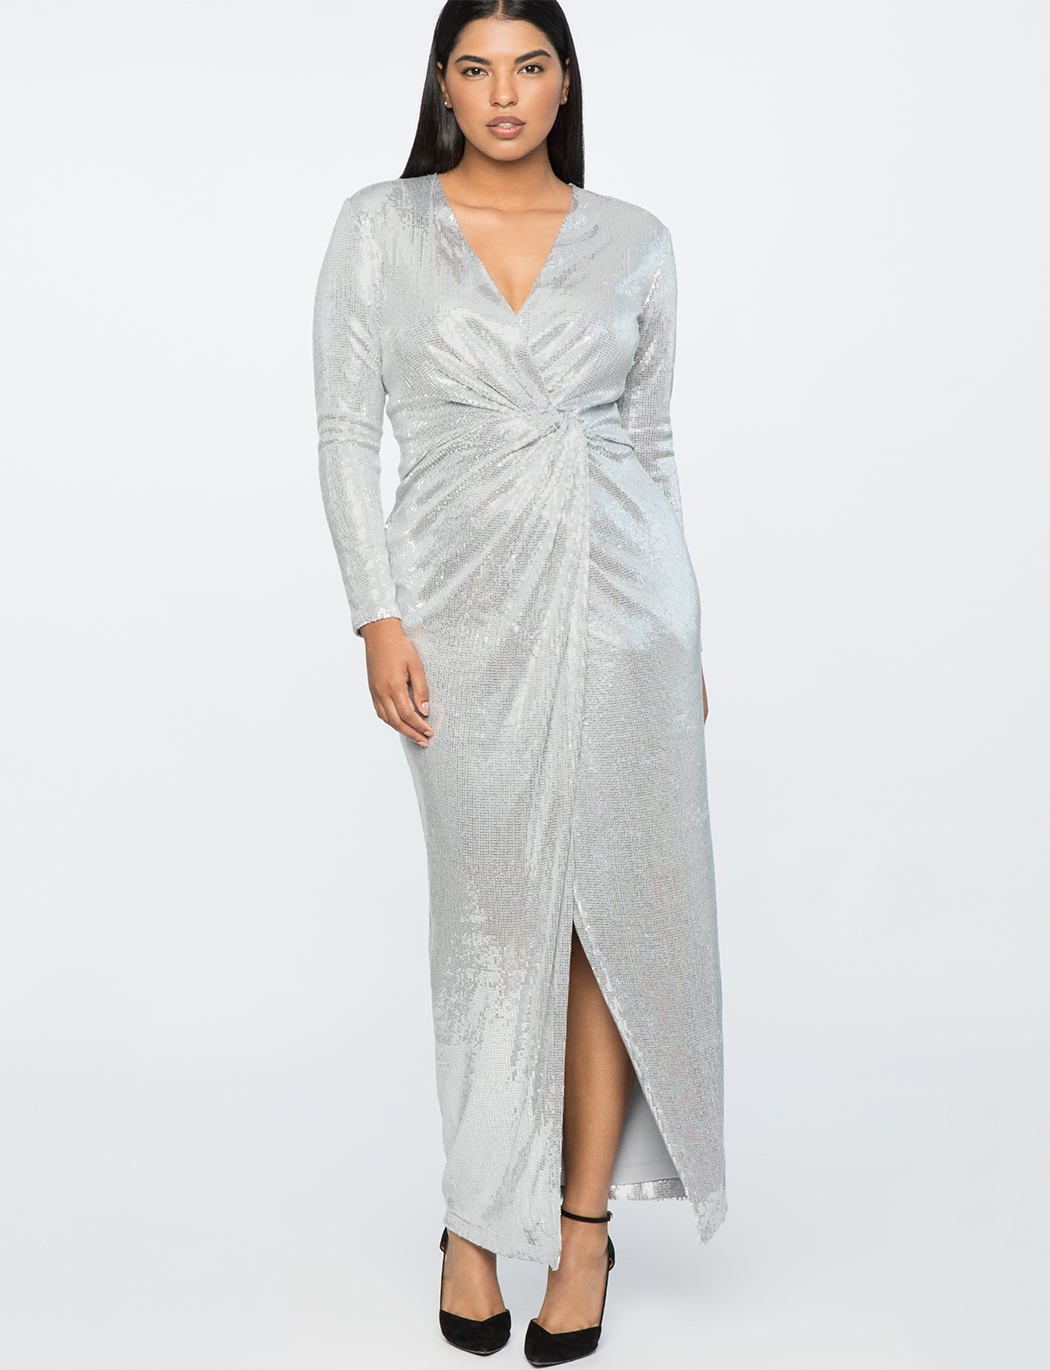 Jason Wu X ELOQUII Sequin Wrap Gown | Women\'s Plus Size Dresses | ELOQUII